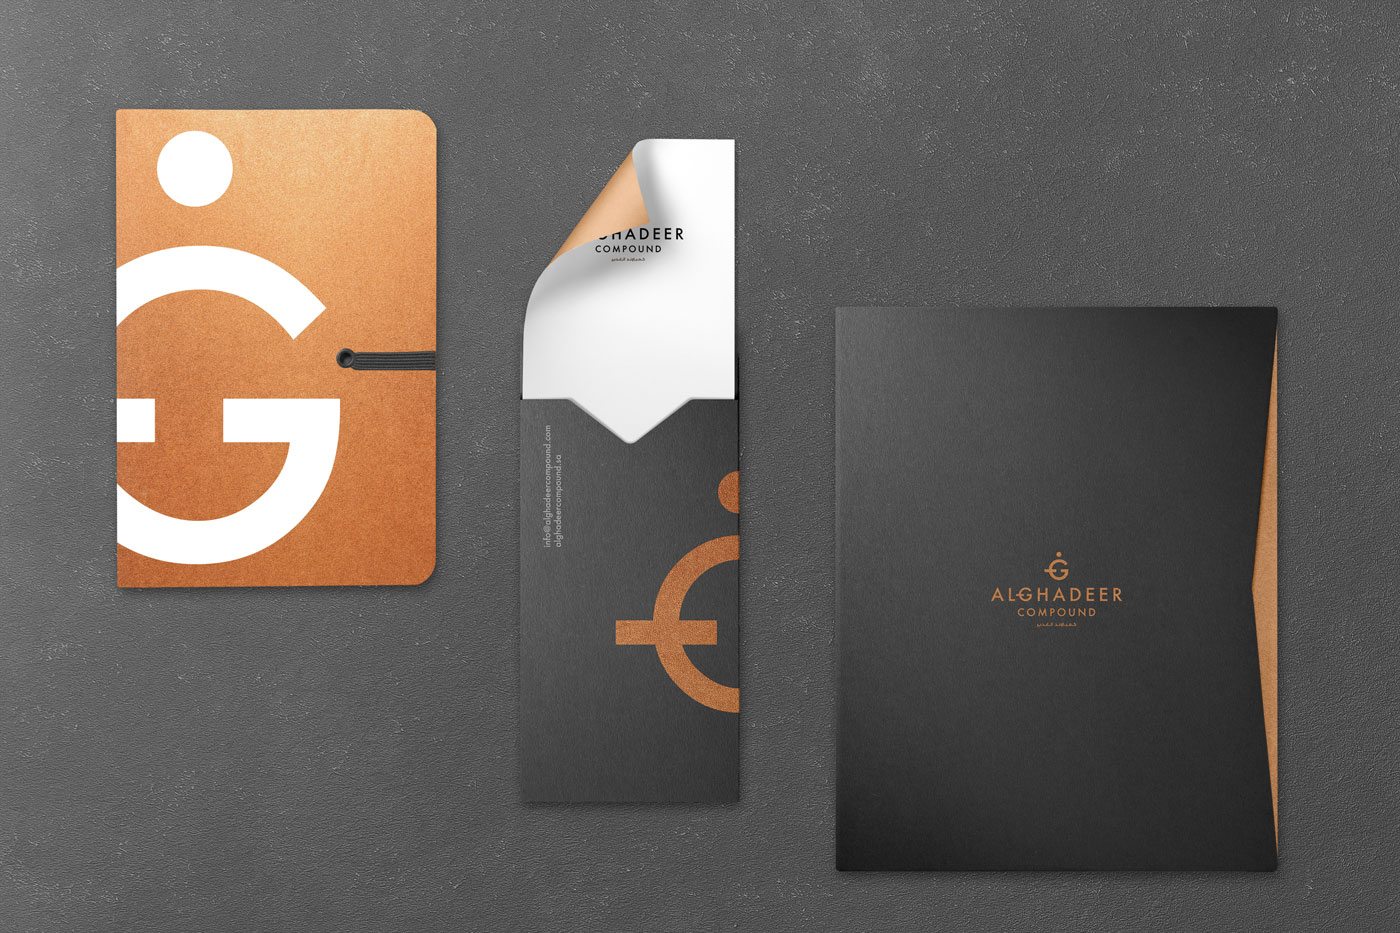 Alghadeer_Compound_Branding_e_Work_By_YaStudio